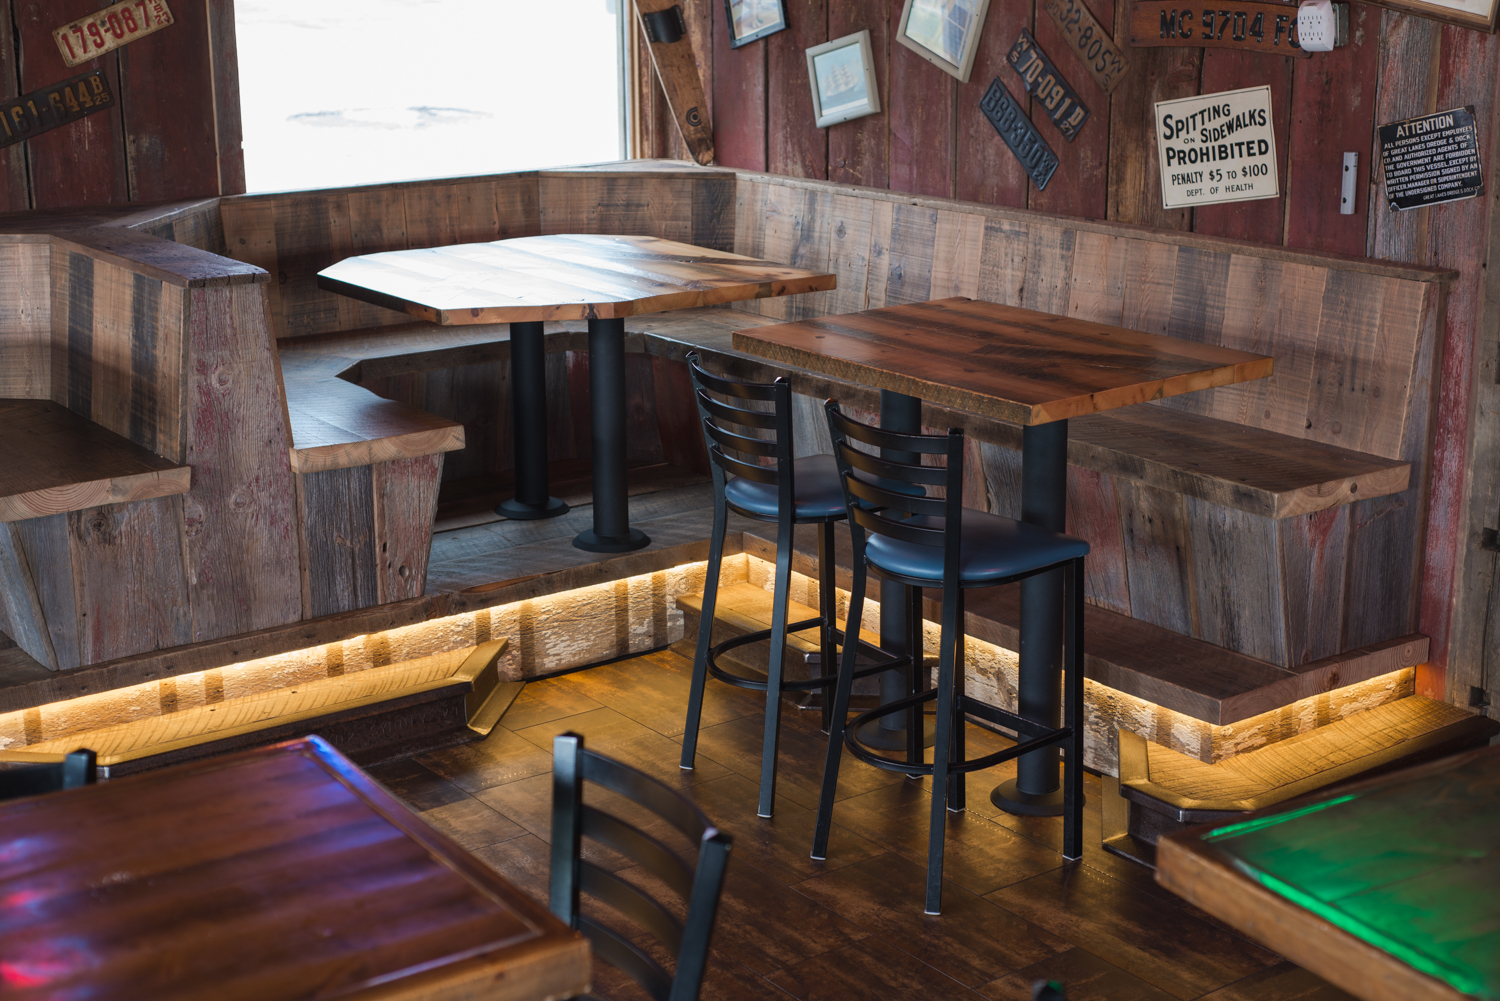 Rail step up to a corner booth creates height enough to match the pub tables.